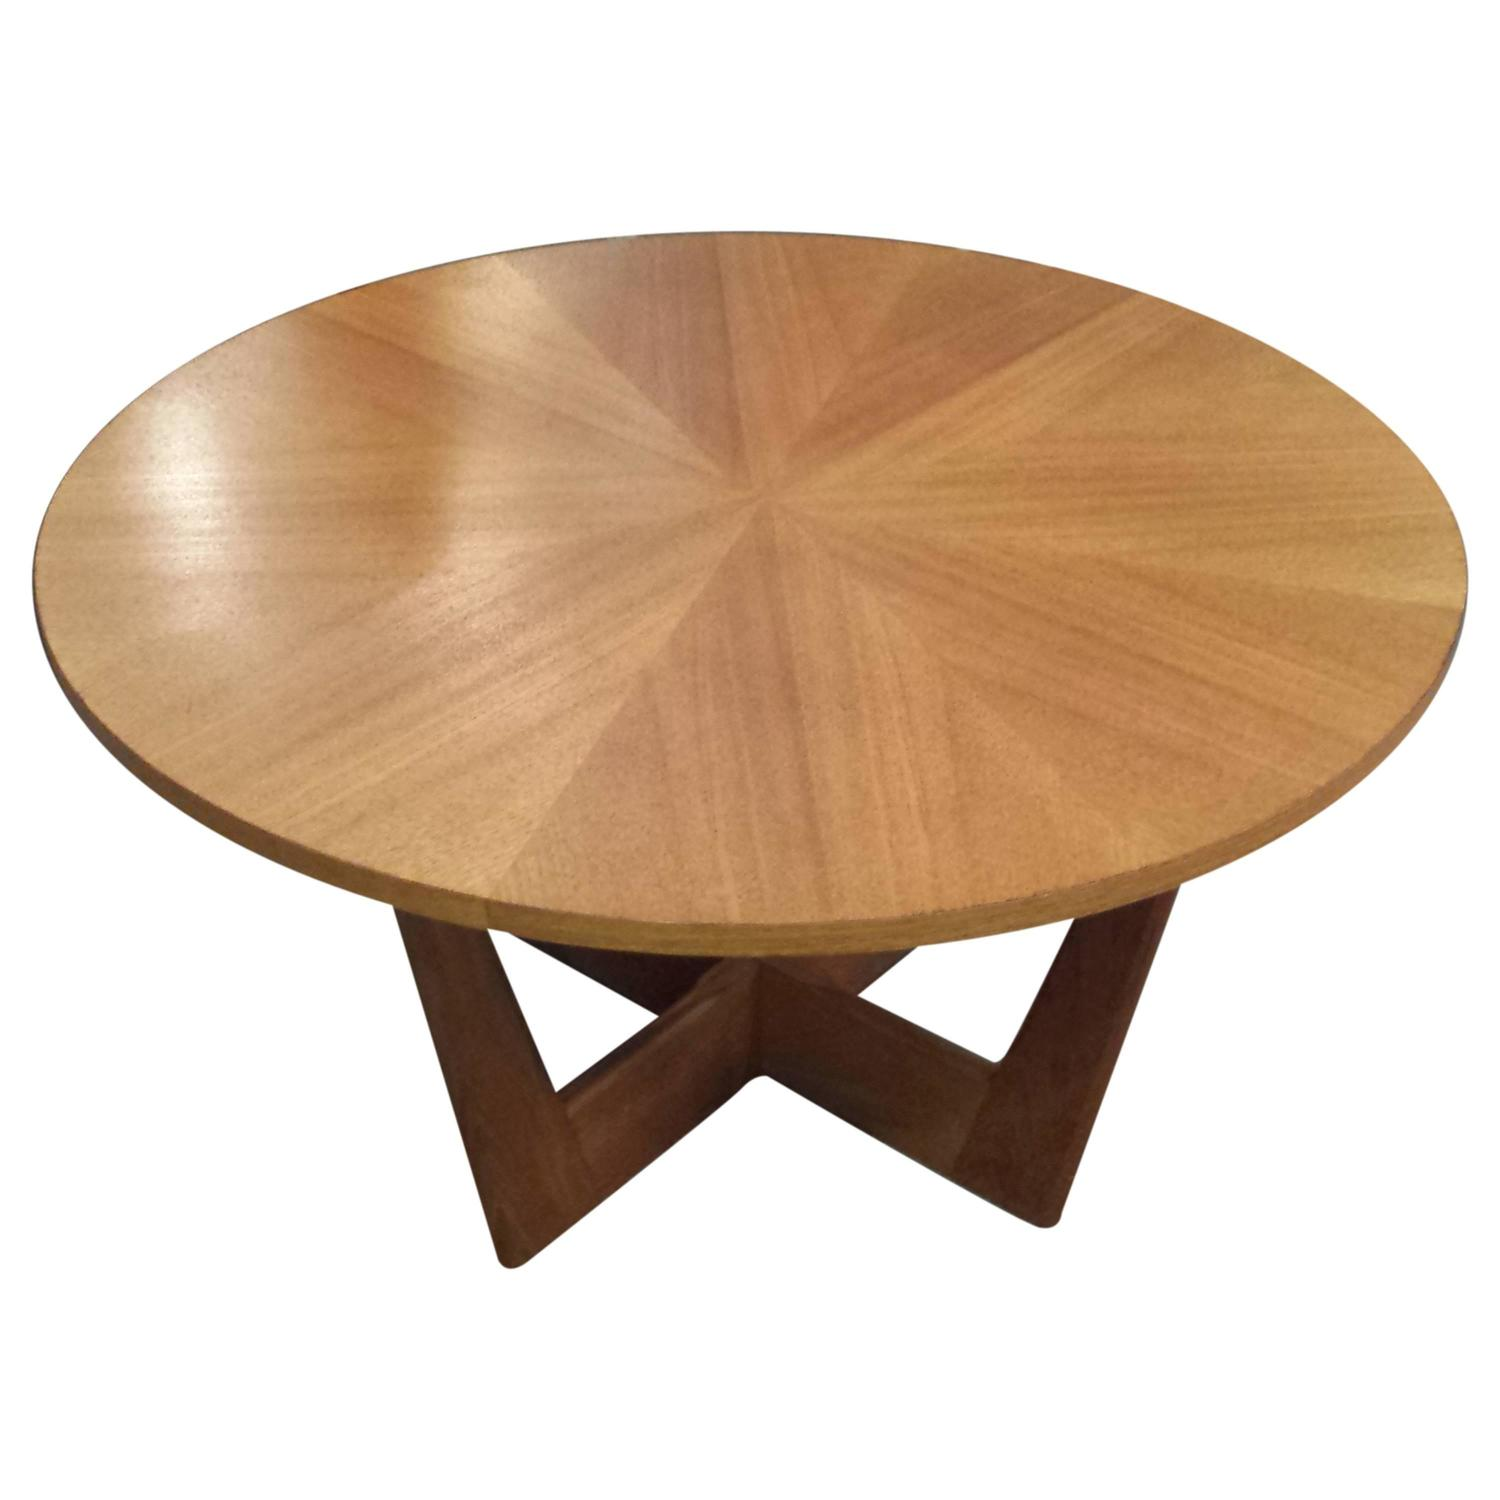 Danish teak circular midcentury coffee table with pie shaped veneered top at 1stdibs Pie shaped coffee table